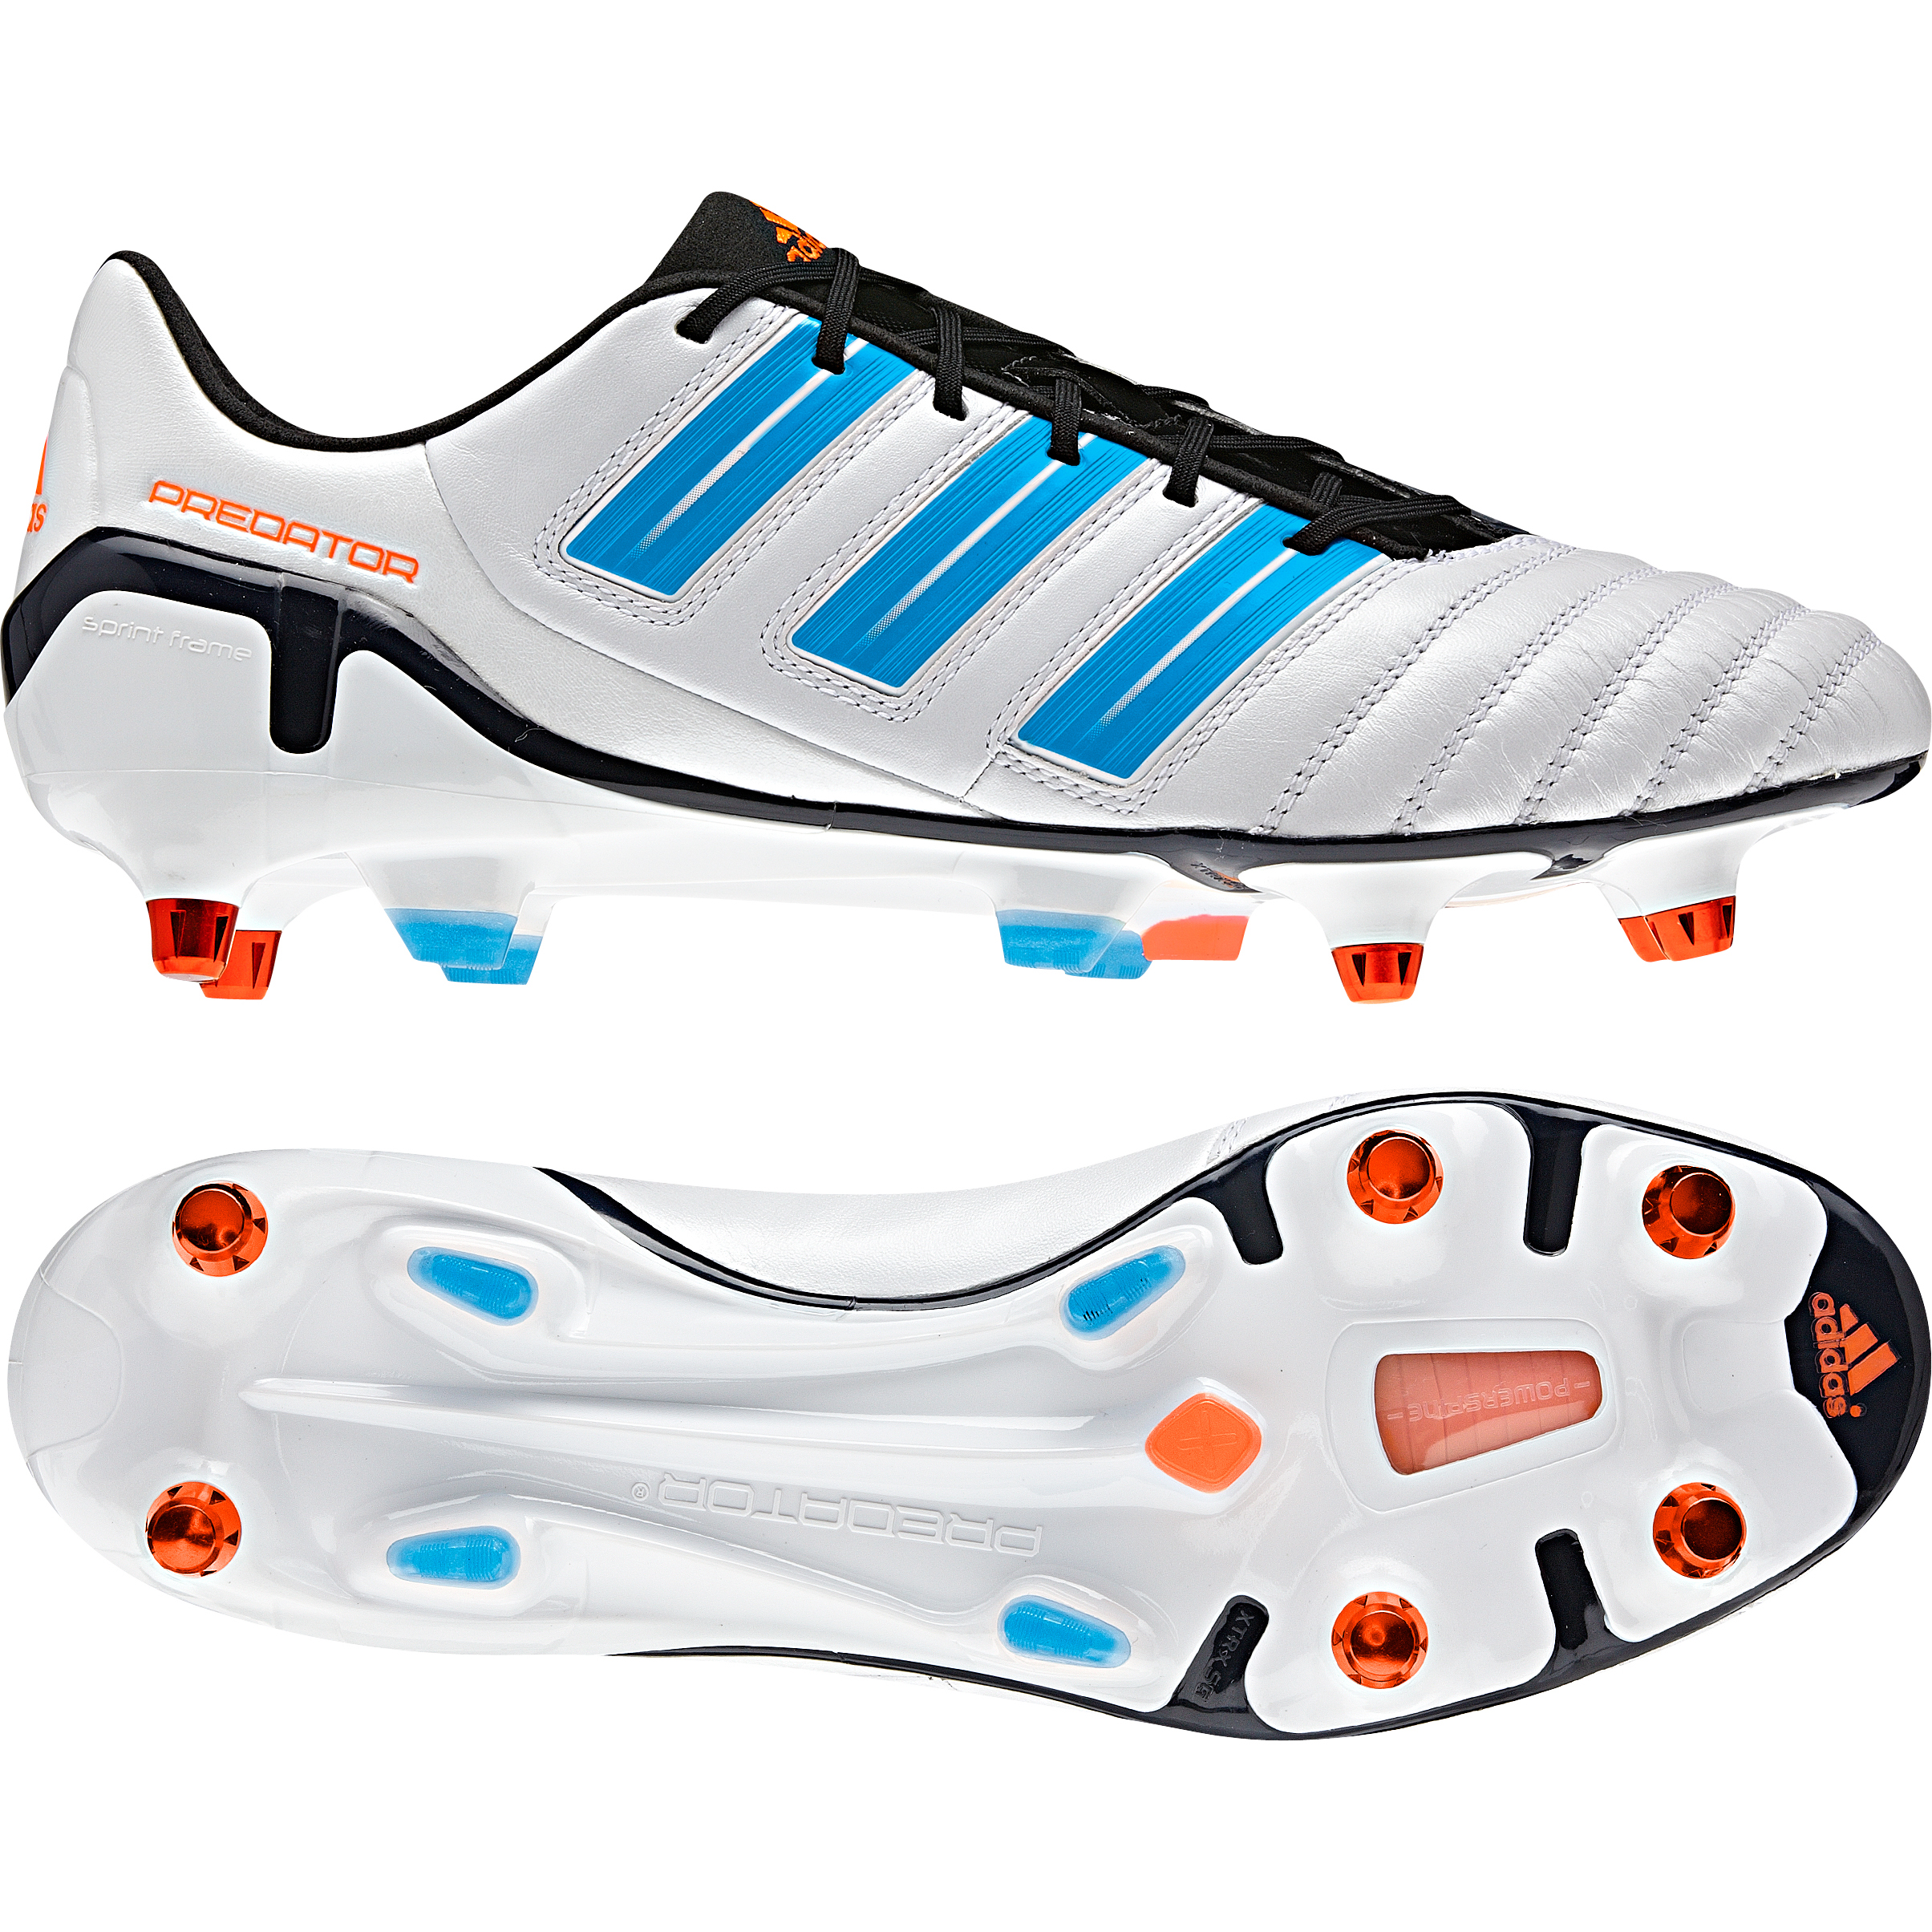 adidas adipower Predator X TRX Soft Ground Football Boots - Predator Run Wht Met. / Pred Sharp Blue Met. / Warning